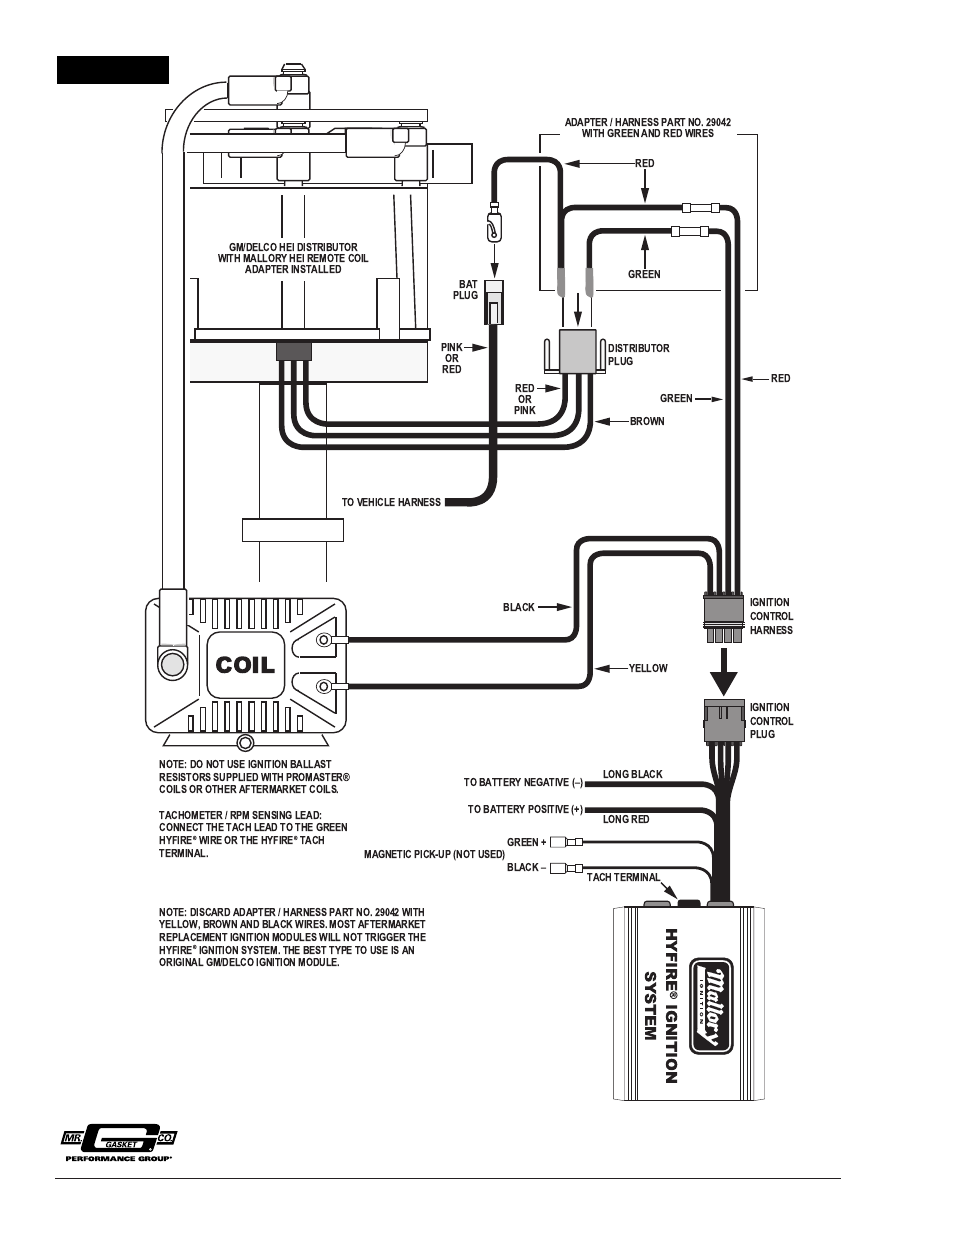 Wiring Diagram For Mallory 29026 Hyfire Ignition on